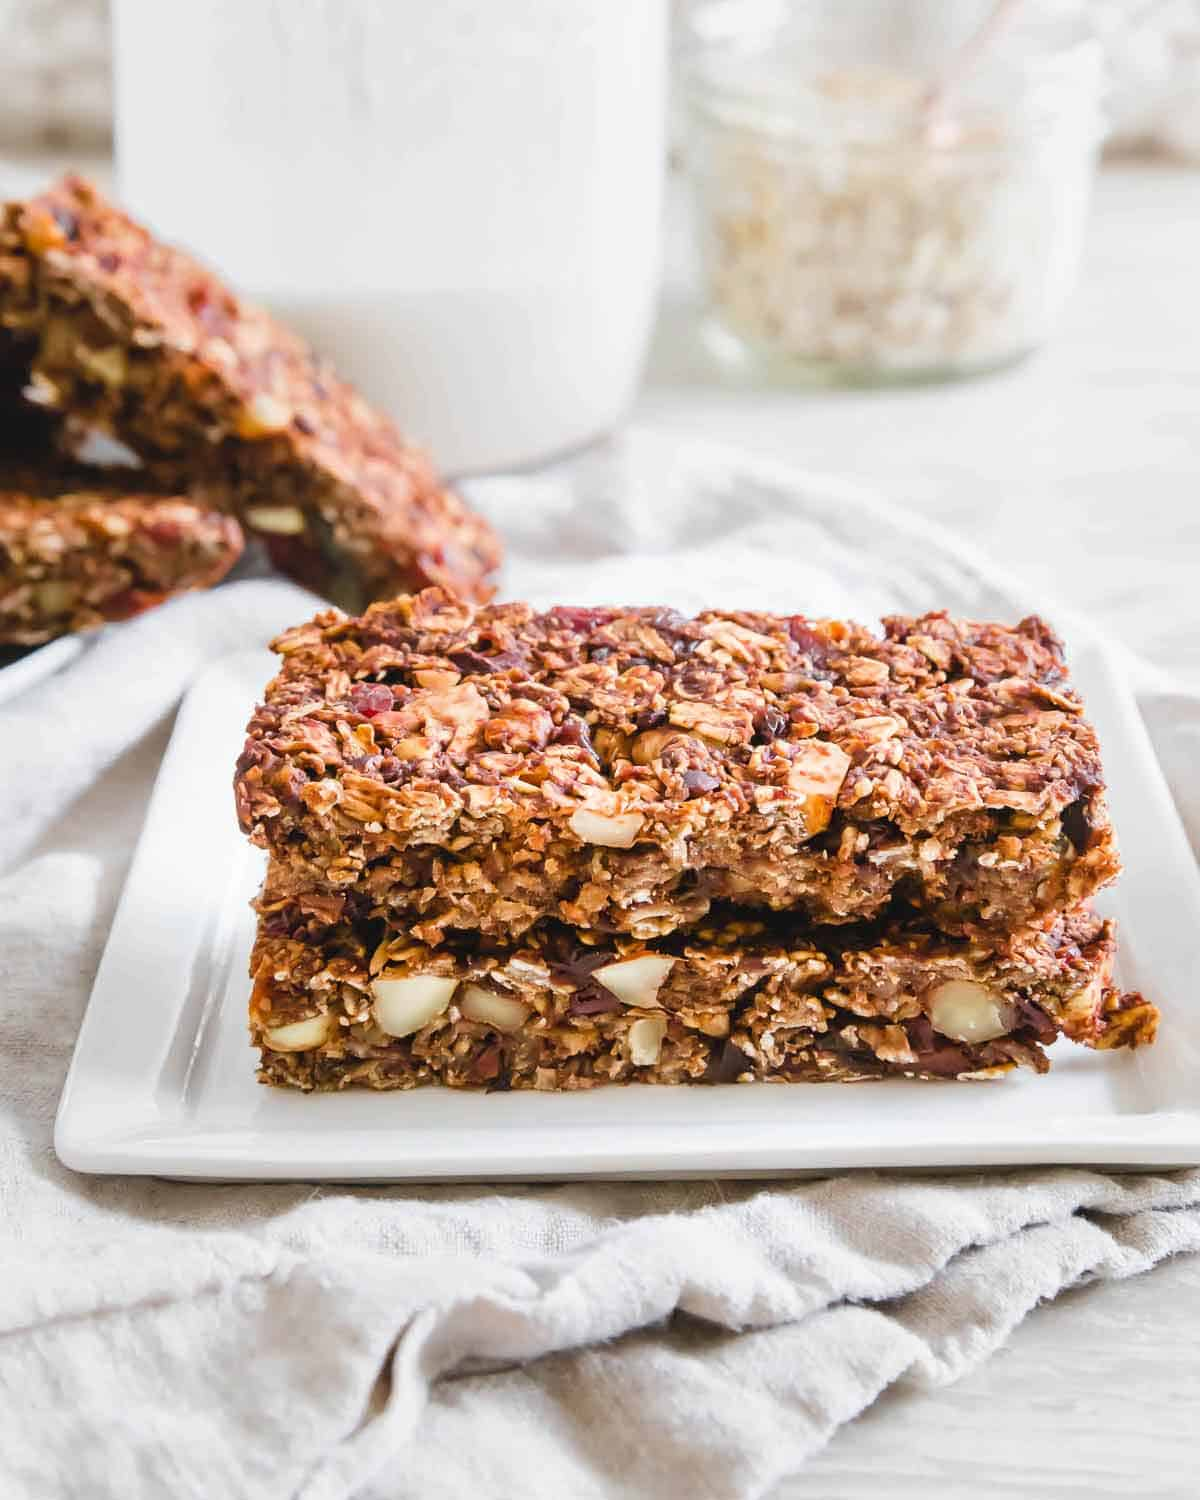 Filled with healthy oats, nuts and fruit, these chocolate granola bars are a nutritious snack.